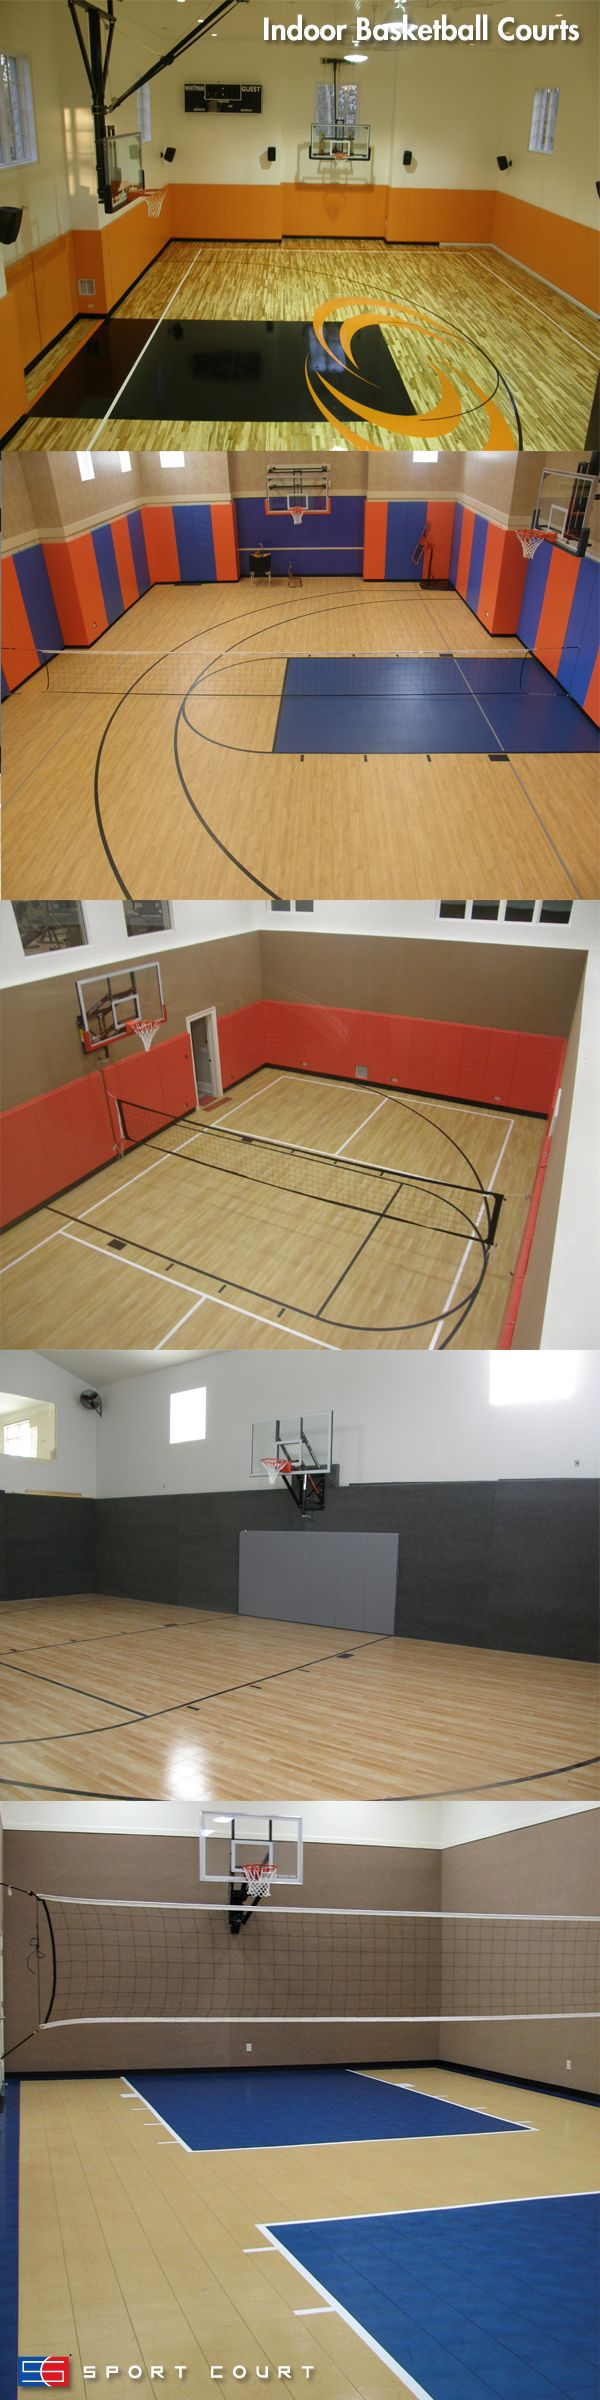 With a Sport Court Indoor Basketball Court, you can expect year round fun for the whole family!  www.sportcourt.com